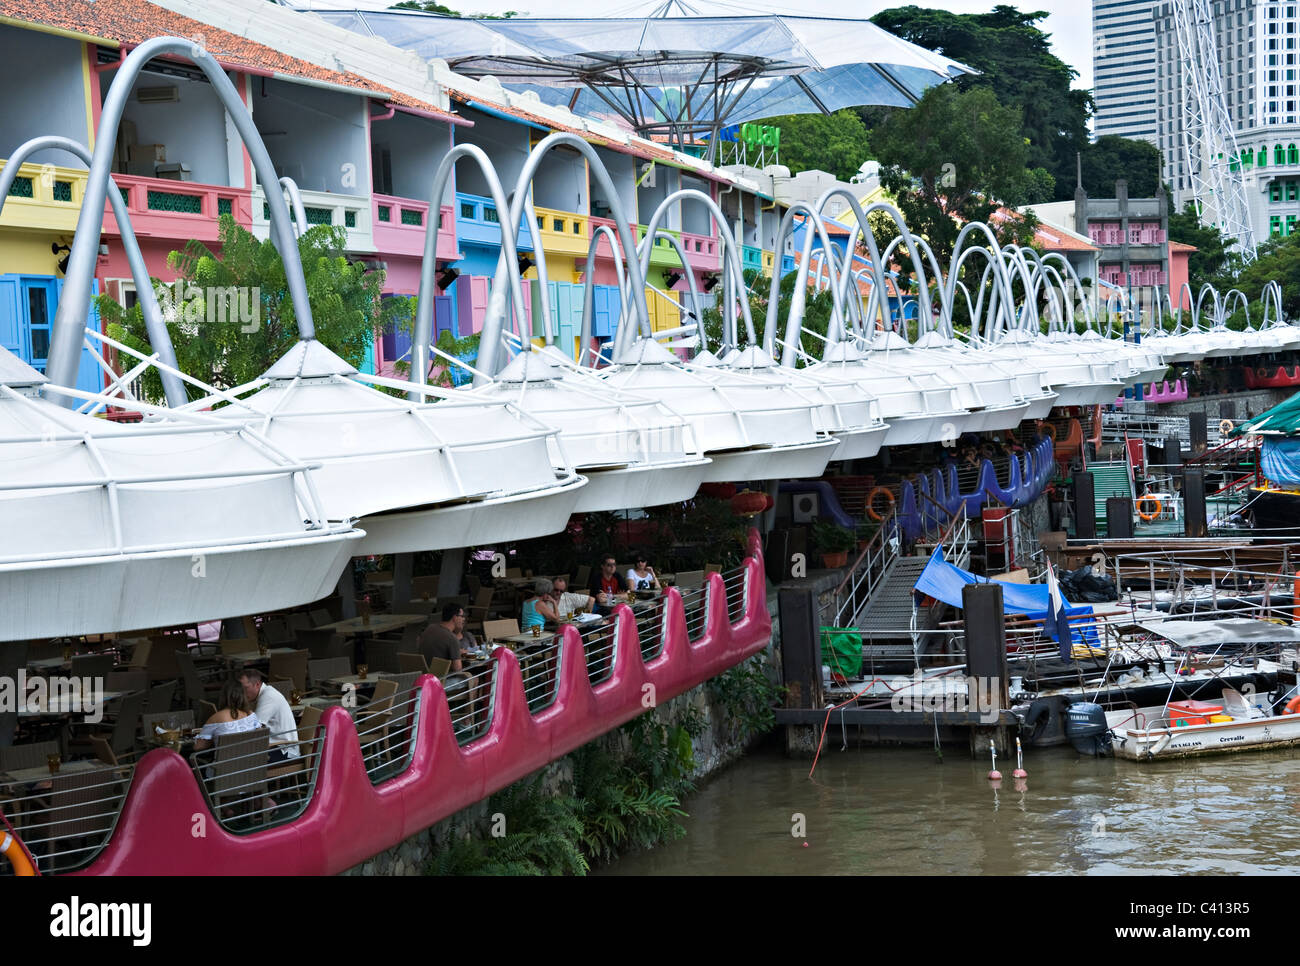 The Colourful Restaurant and Dining Facilities Cafes Bars Bistros with Covered Awnings at Clarke Quay Singapore - Stock Image